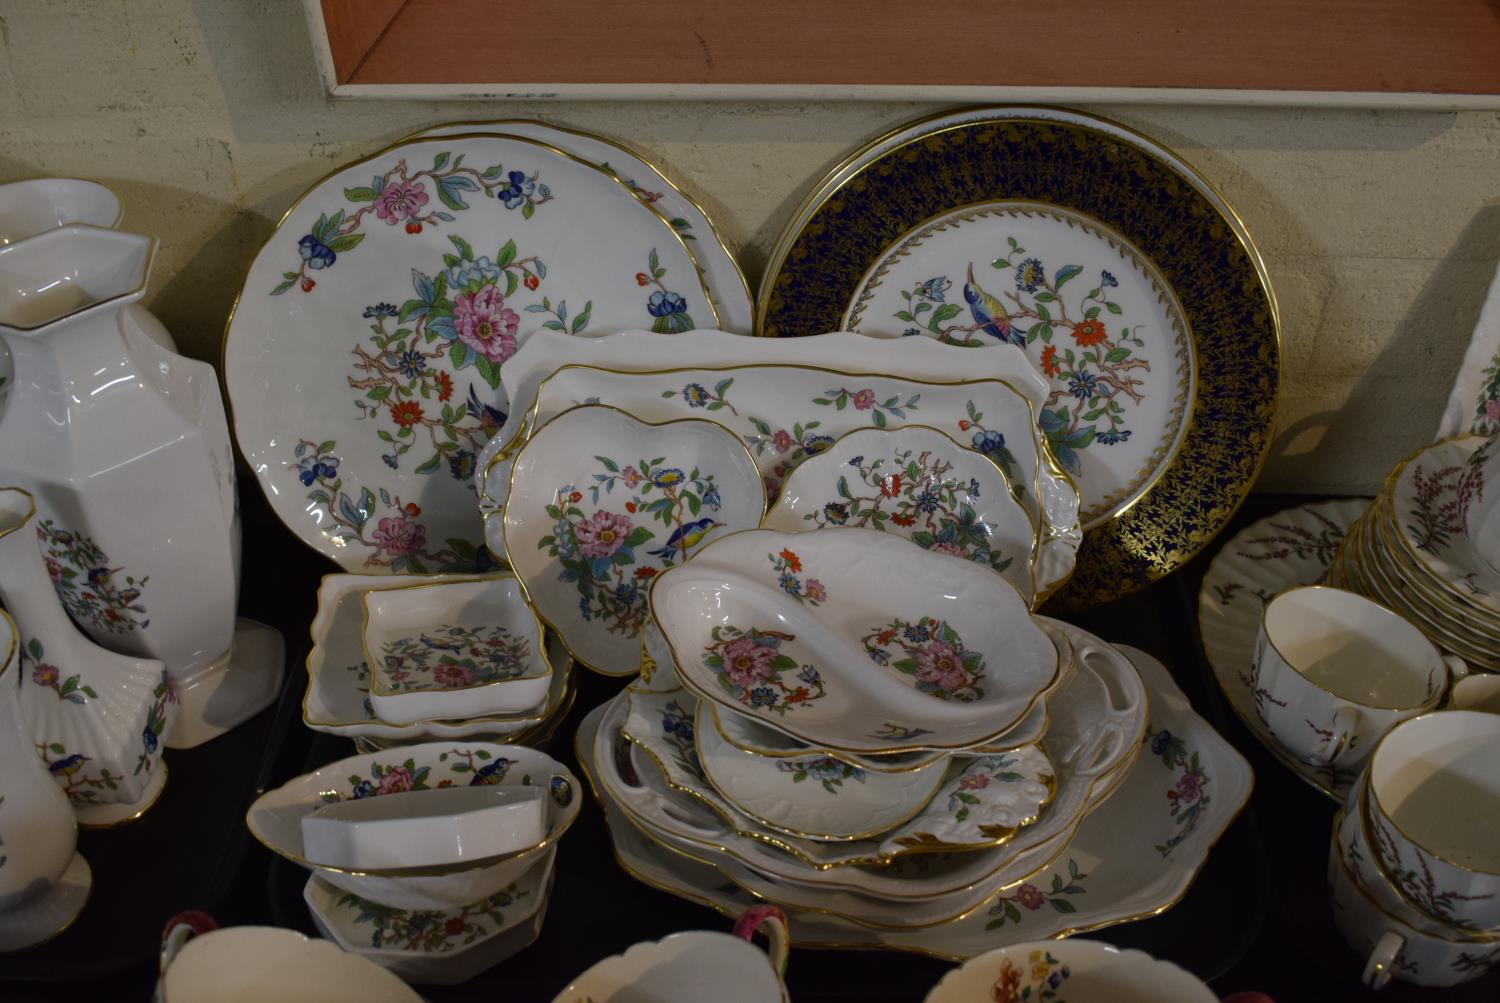 Lot 207 - A Tray Containing Large Quantity of Aynsley Pembroke Pattern Plates, Dishes, Pin Dishes, Trays etc